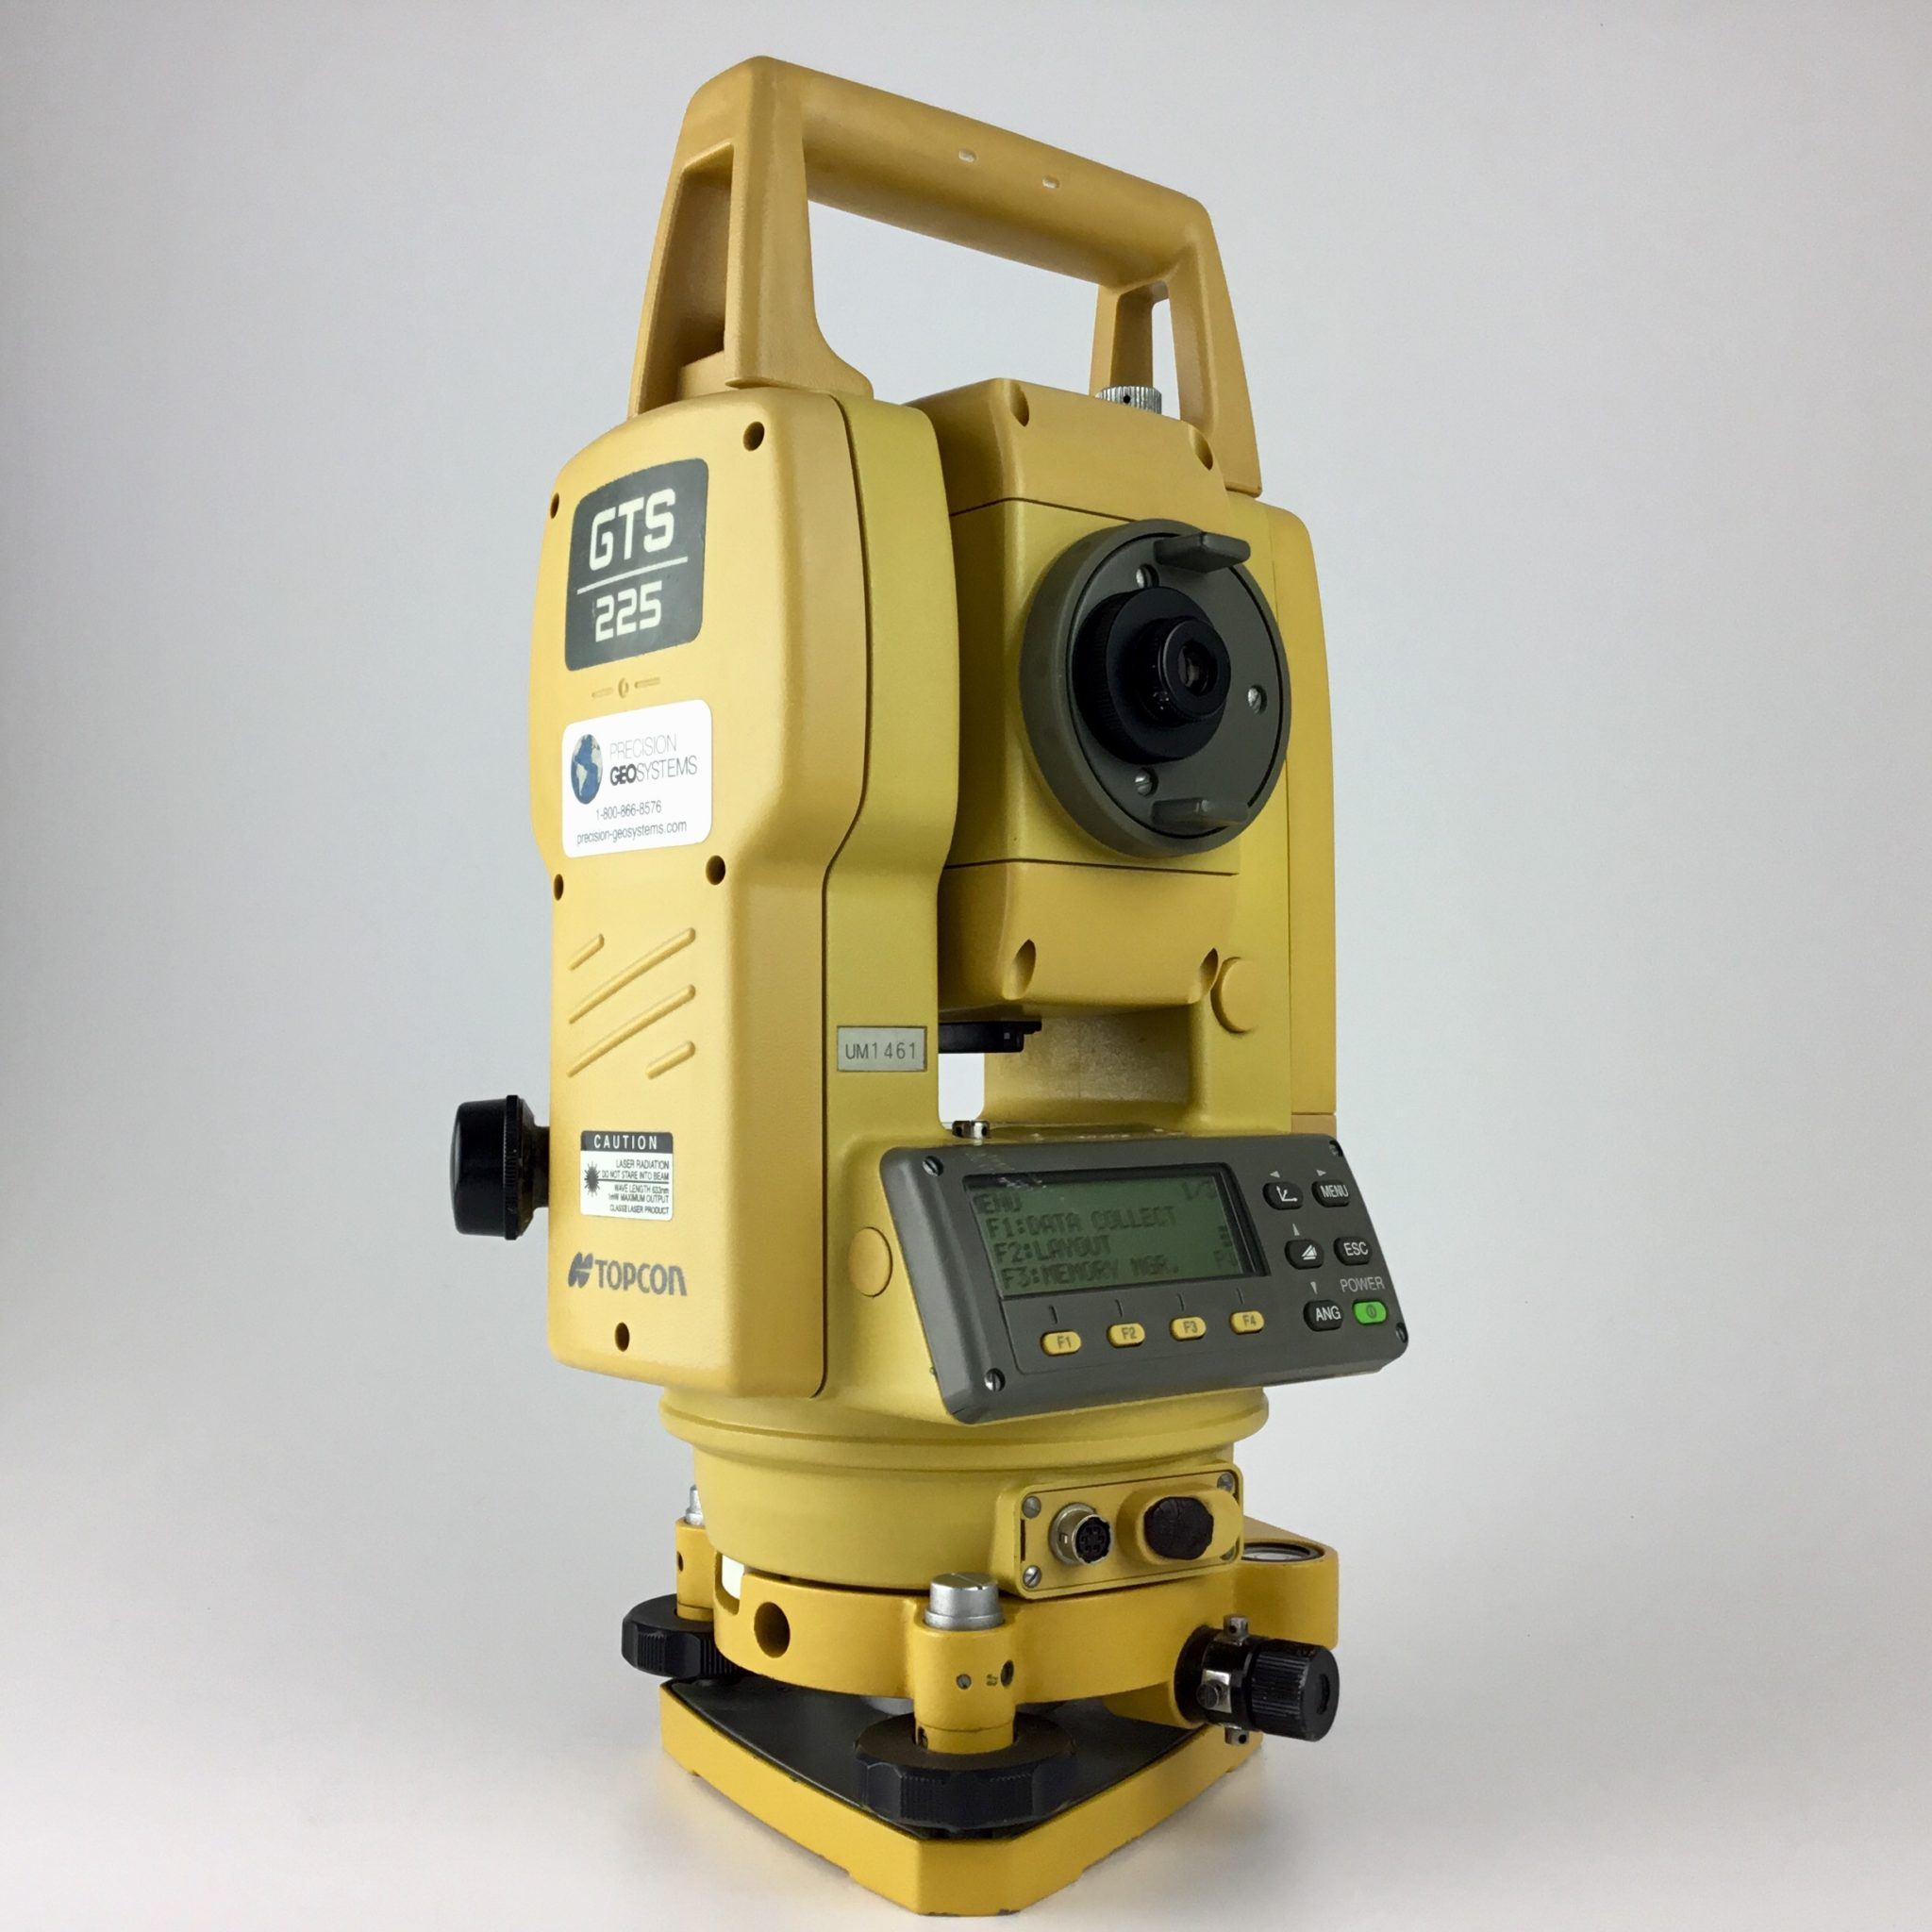 Topcon Gts 225 5 Total Station Precision Geosystems Inc